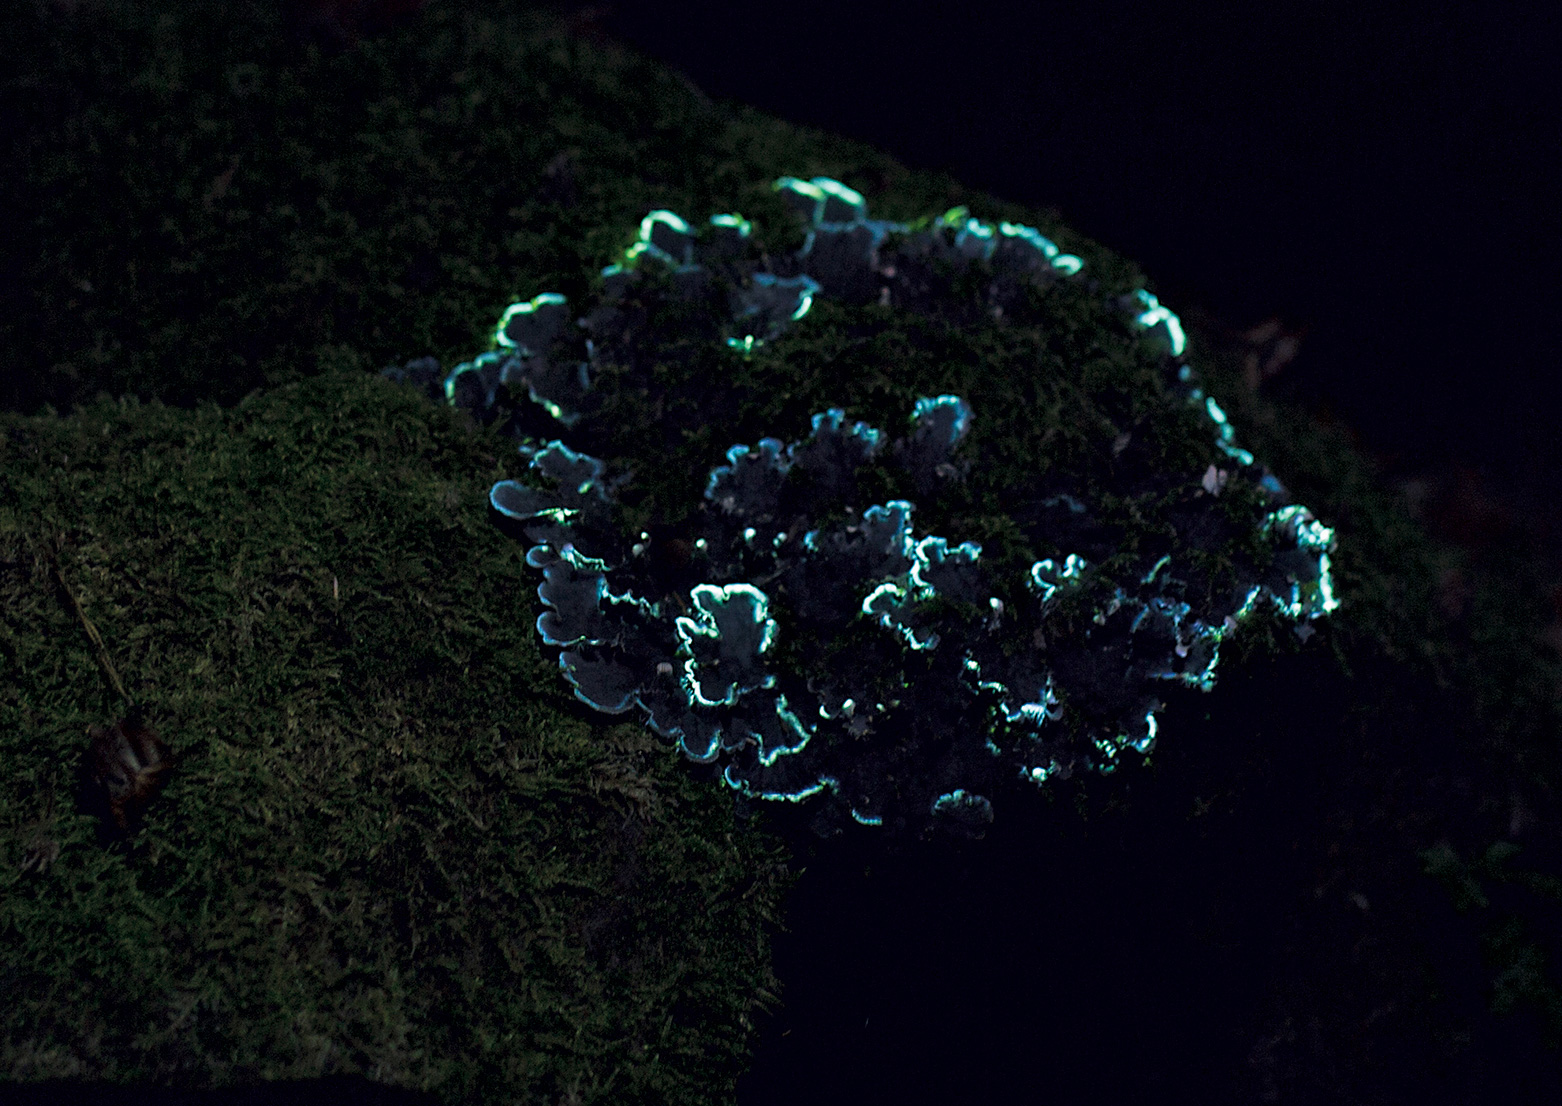 The surreal phenomena of bioluminescence as projected by artists Friedrich van Schoor and Tarek Mawad| Bioluminescent Forest| 3hund| STIR